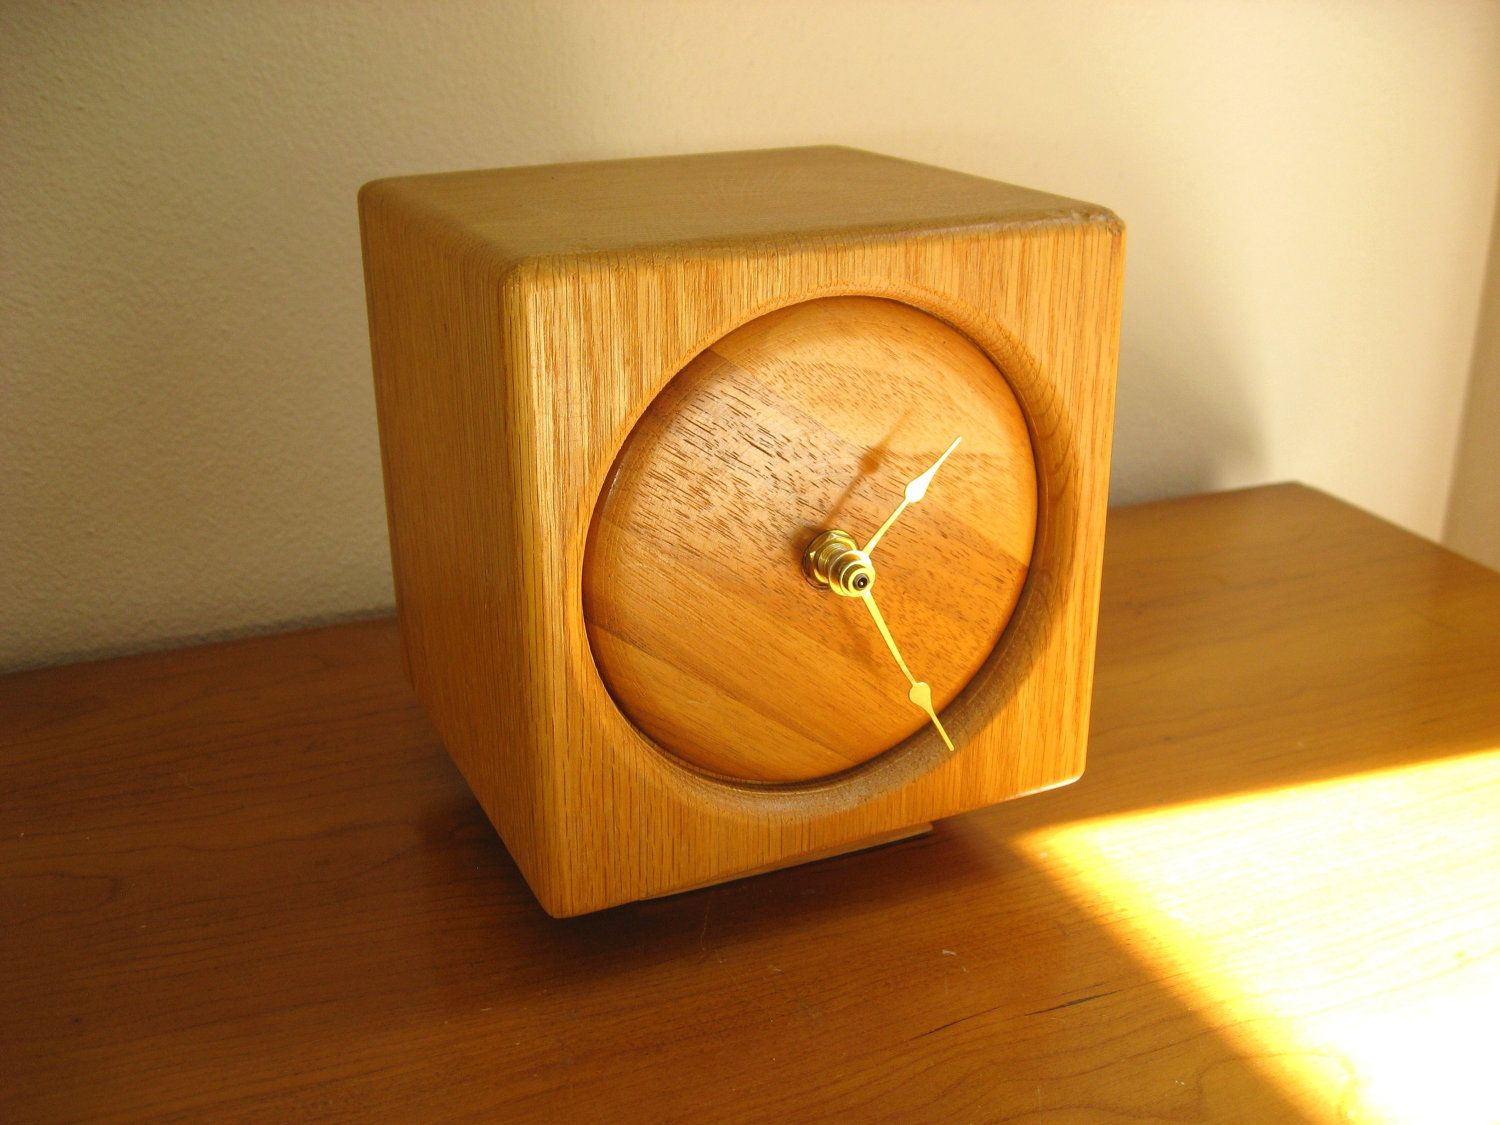 Vintage wooden music stand book stand by vintagearcheology on etsy - Vintage Wood Block Clock Butcher Block Clock Cube Shaped Square Modern